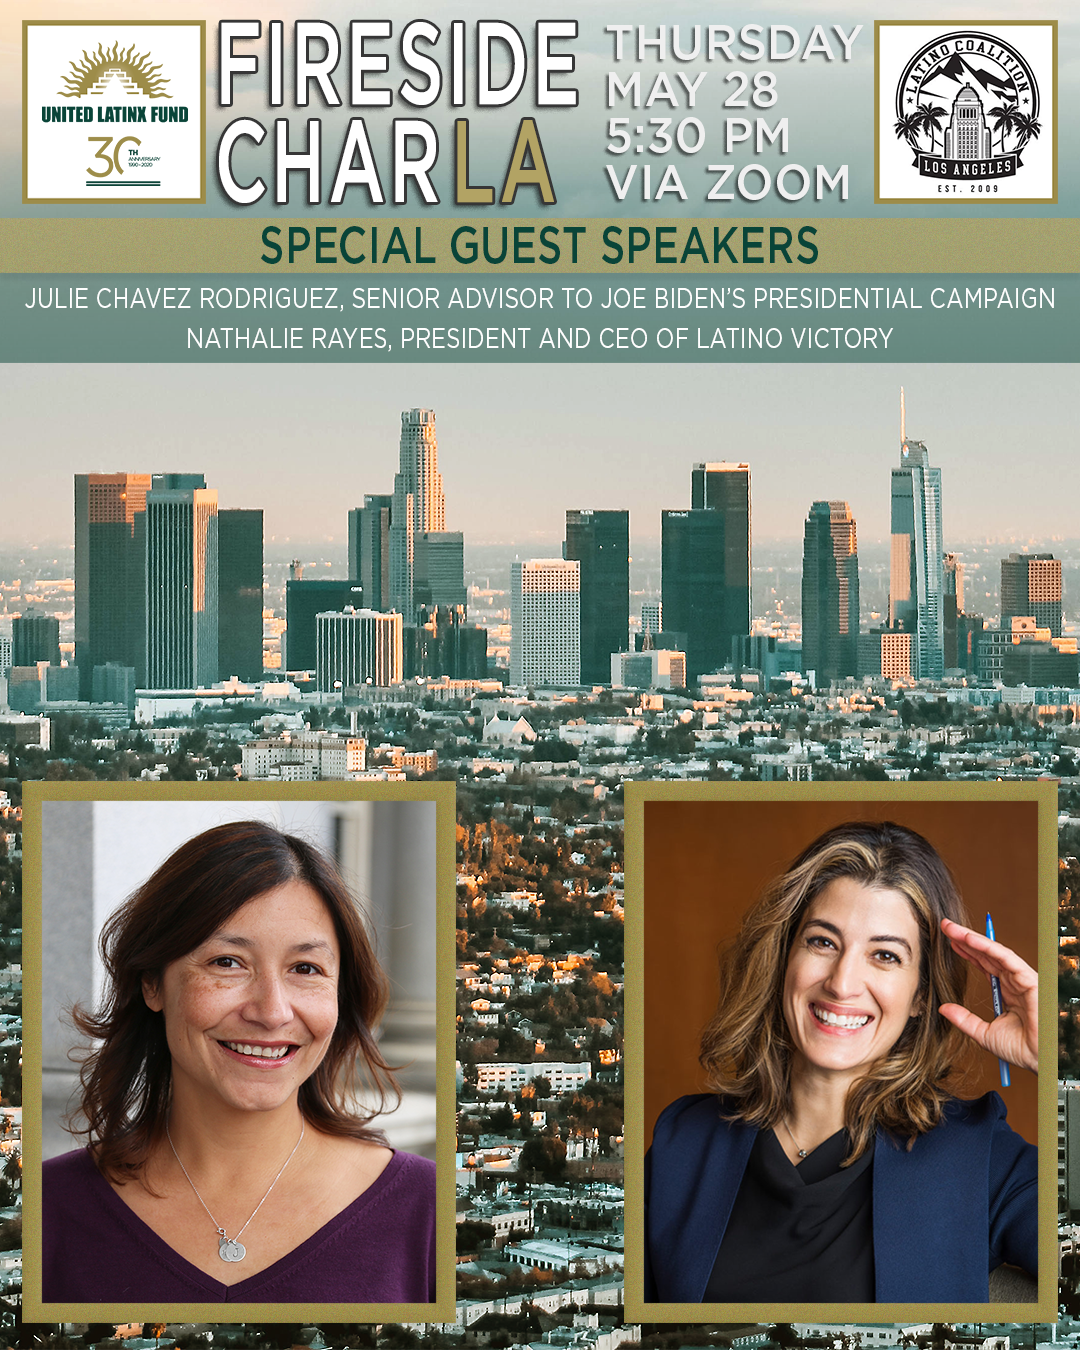 5/28/2020 Fireside CharLA - Featuring Nathalie Rayes & Julie Chavez Rodriguez